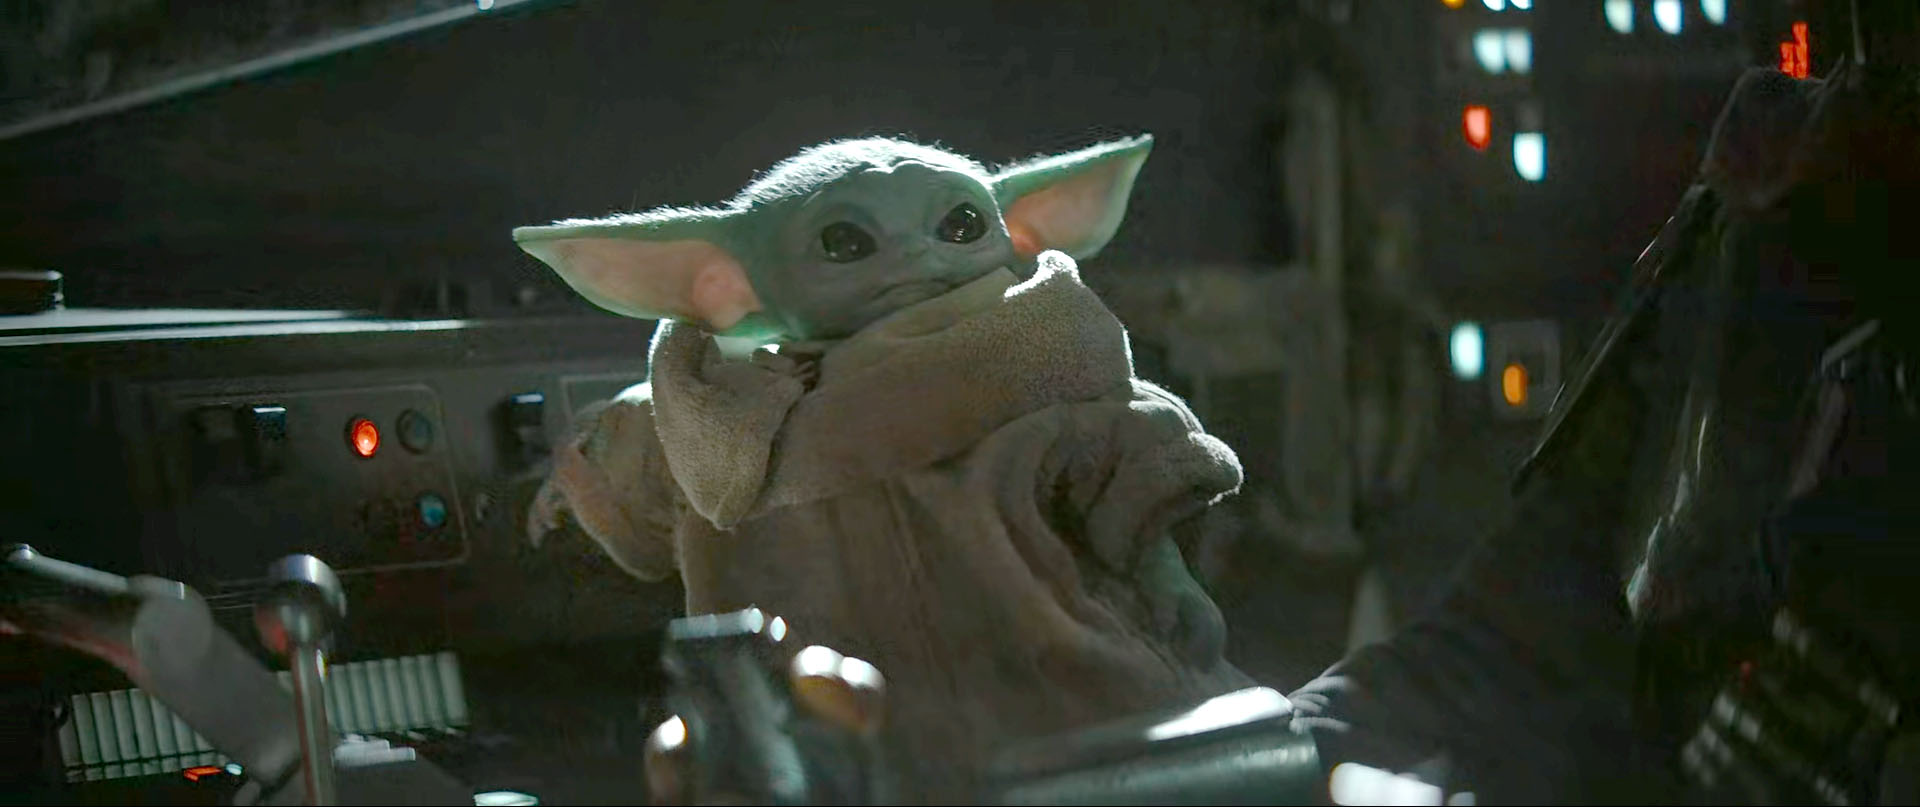 Baby Yoda Inspires Yet Another Set Of Hilarious Memes The